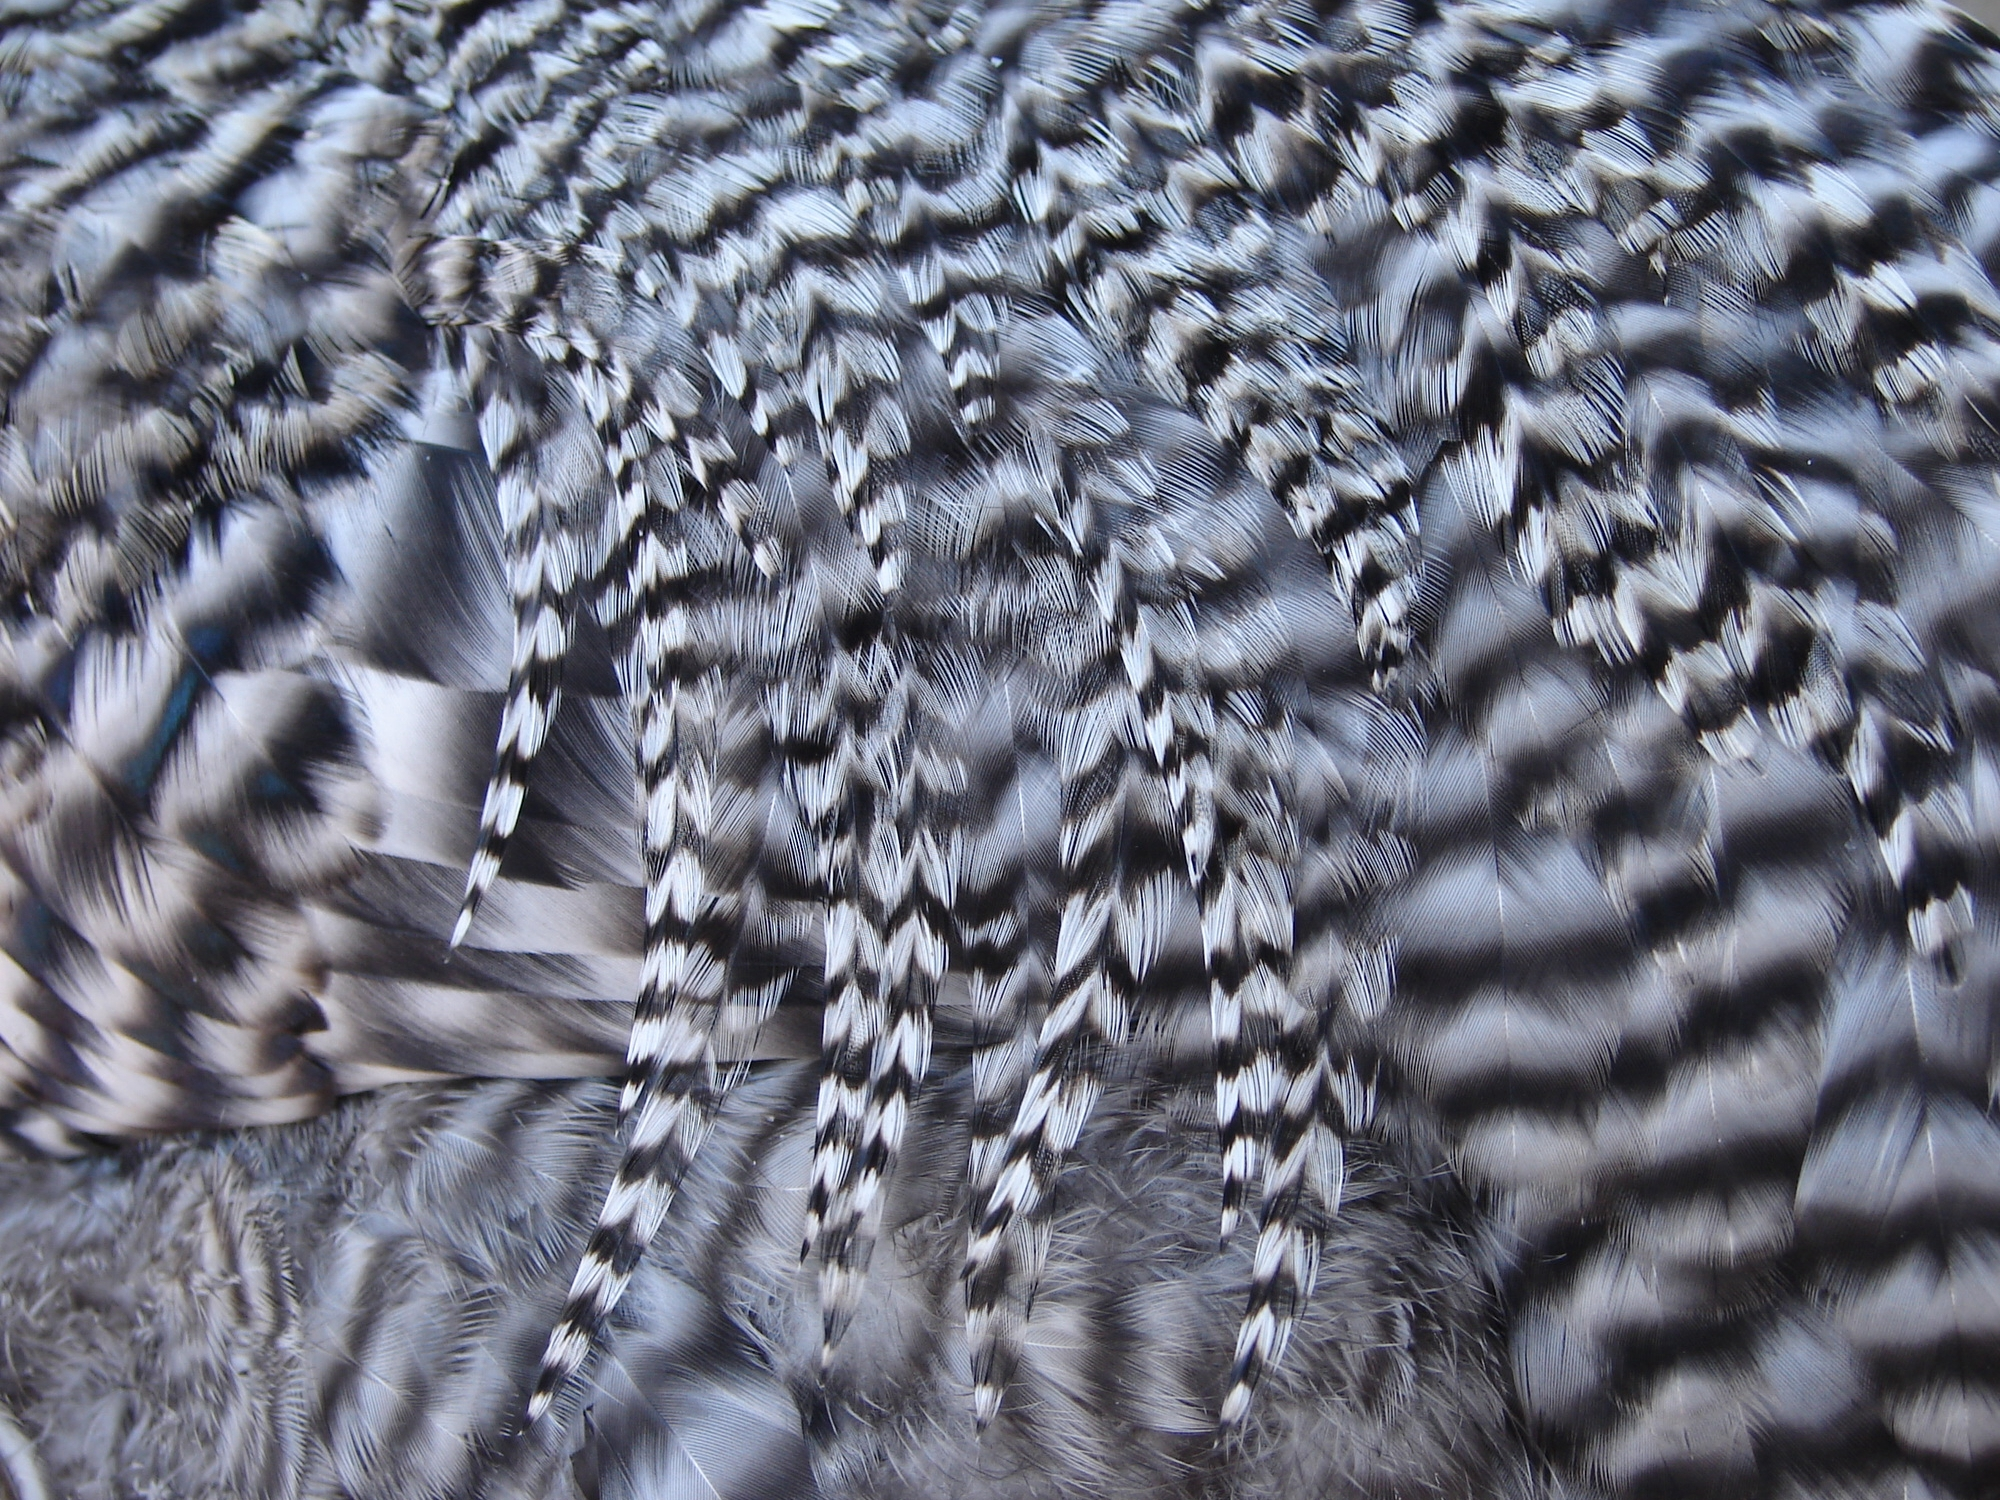 Striped Chicken Feathers by FantasyStock